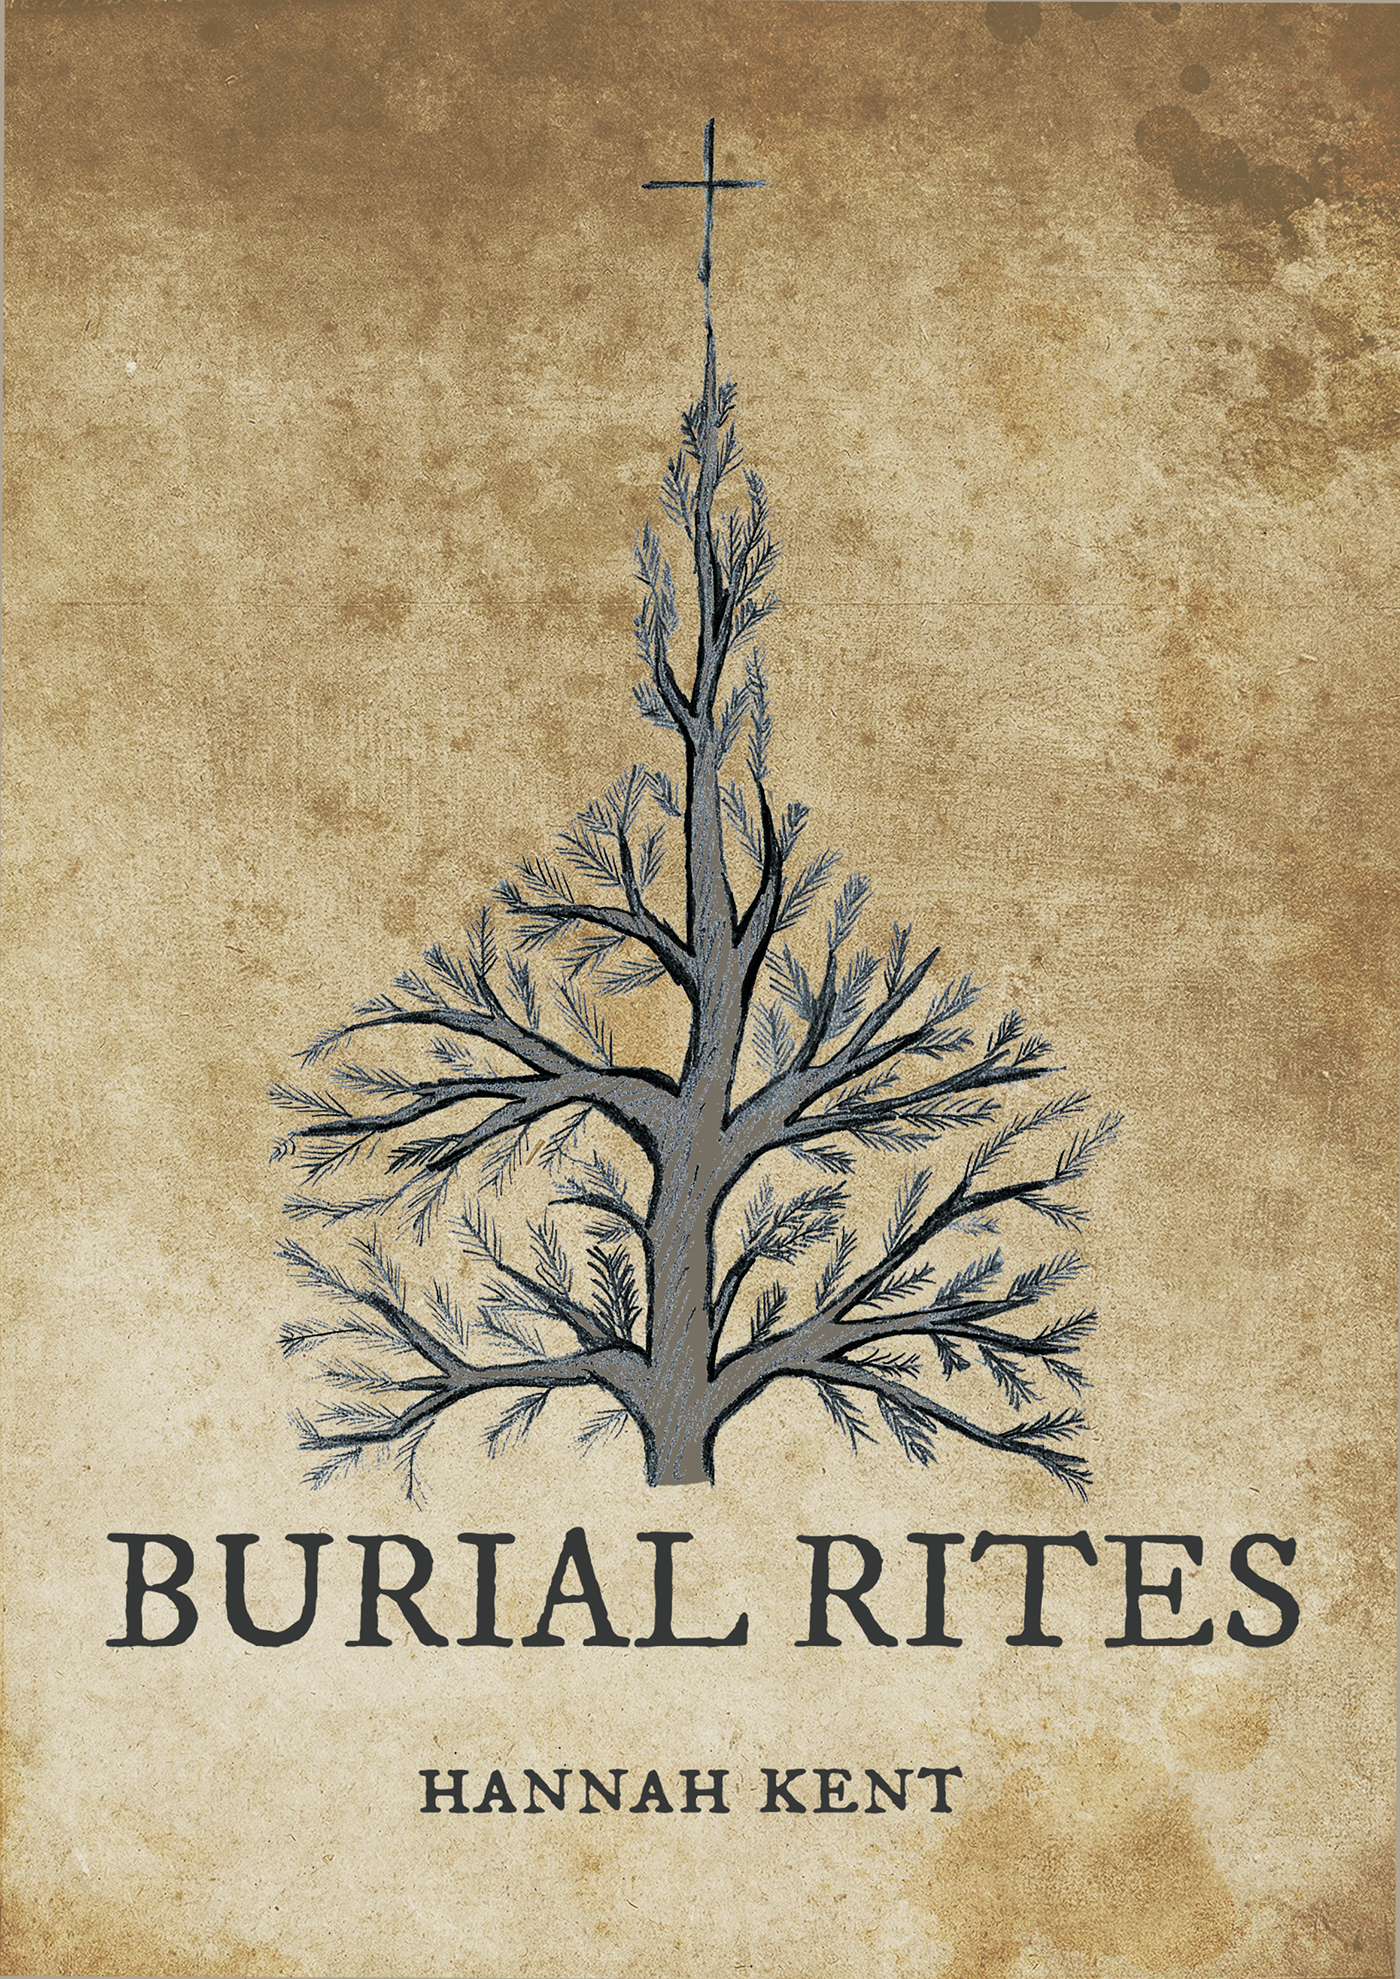 Burial Rites Book Cover Project On Behance